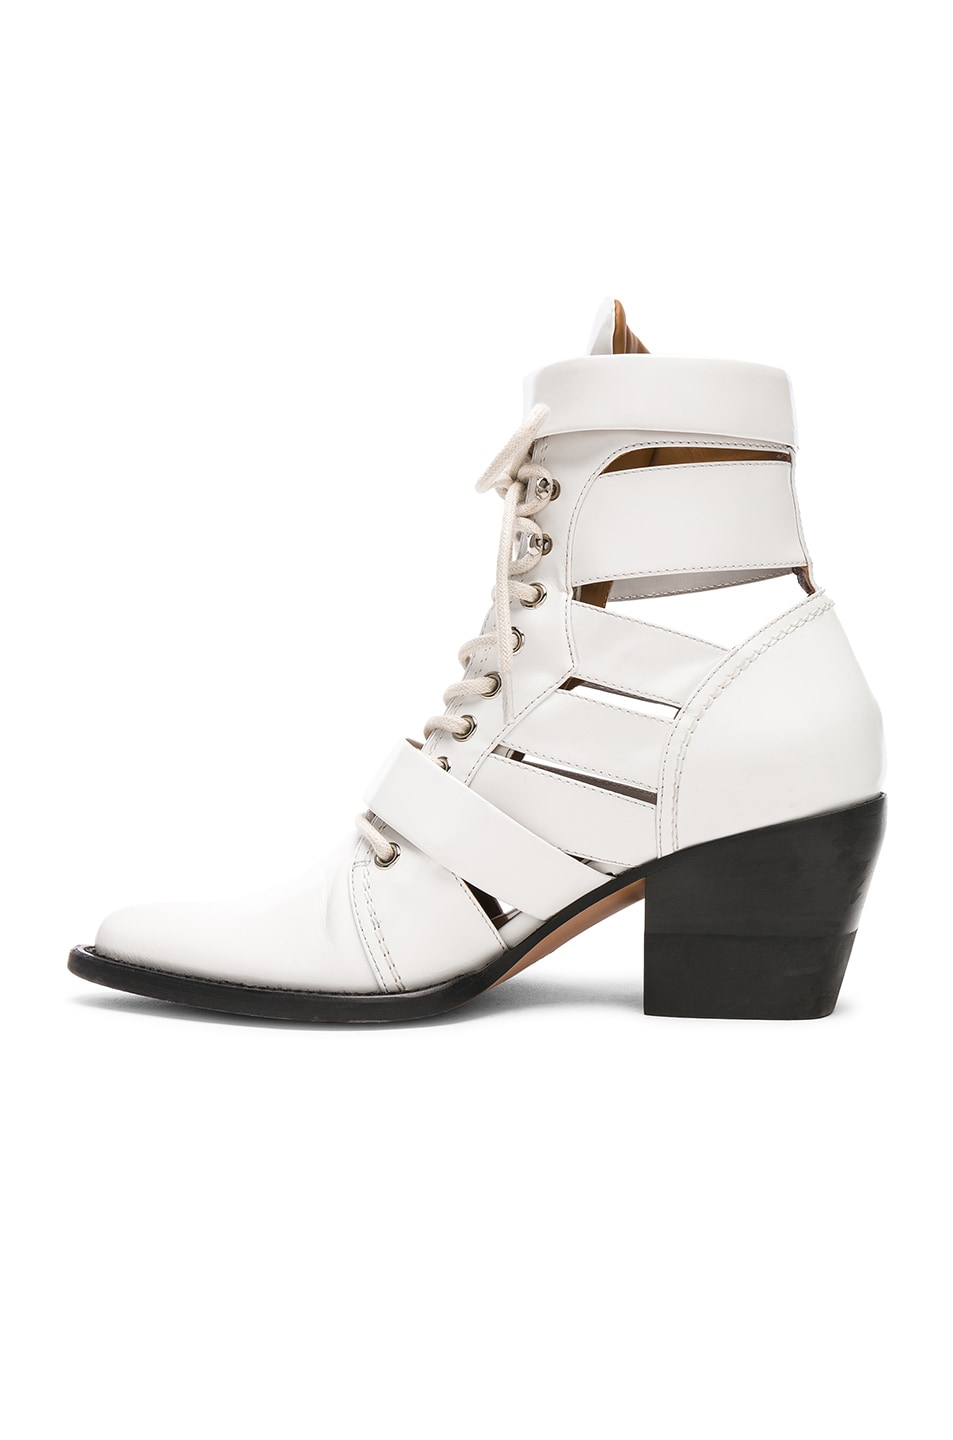 Image 5 of Chloe Leather Rylee Lace Up Buckle Boots in White